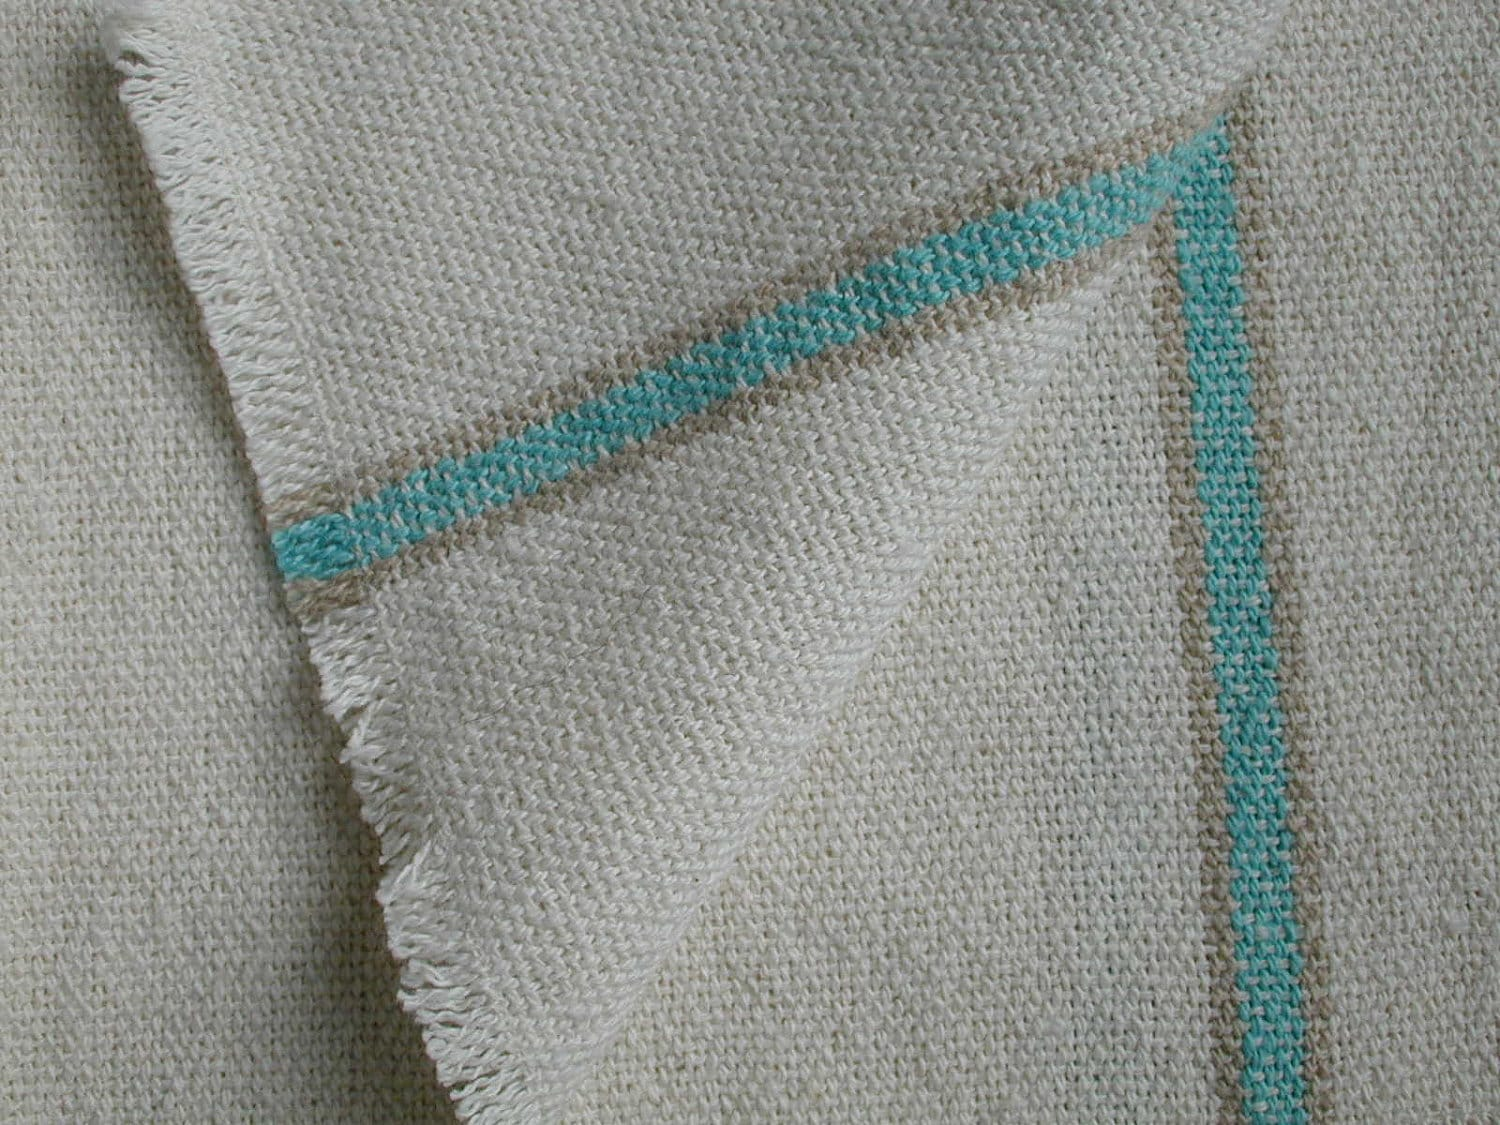 Aqua Memories Handwoven Cotton Kitchen Towel - HorseshoeNeckWeavers